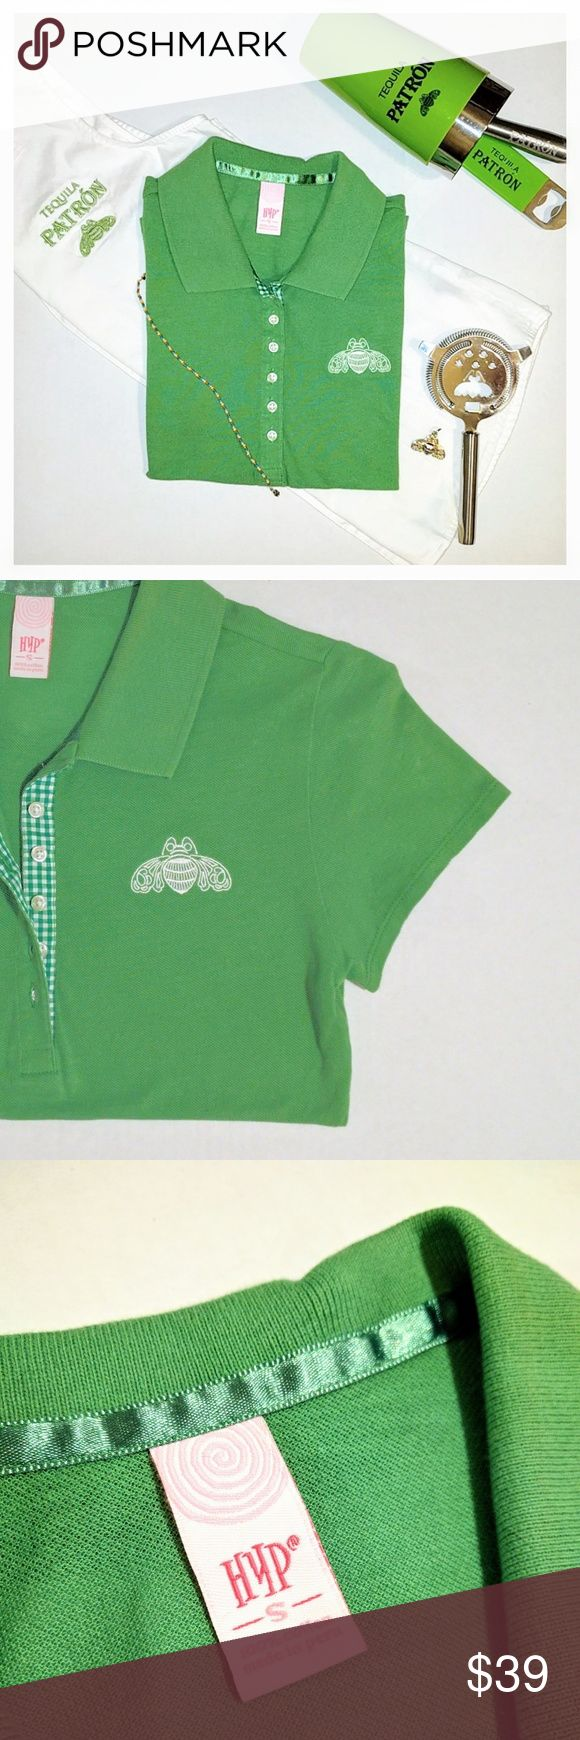 {Patron Tequila} fitted polo Patron Tequila * Size Small * Fitted Green Polo Shirt w/gingham print under buttons  * Signature Patron Tequila logo and bumble bee embroidery * Cropped Waist Length * BRAND NEW - FLAWLESS  * Top * Golf * Spring * Summer * Sponsor * Preppy  * Graphic * Tee * Crop * Bright * Sunny * Short Sleeve Patron Tequila Tops Tees - Short Sleeve